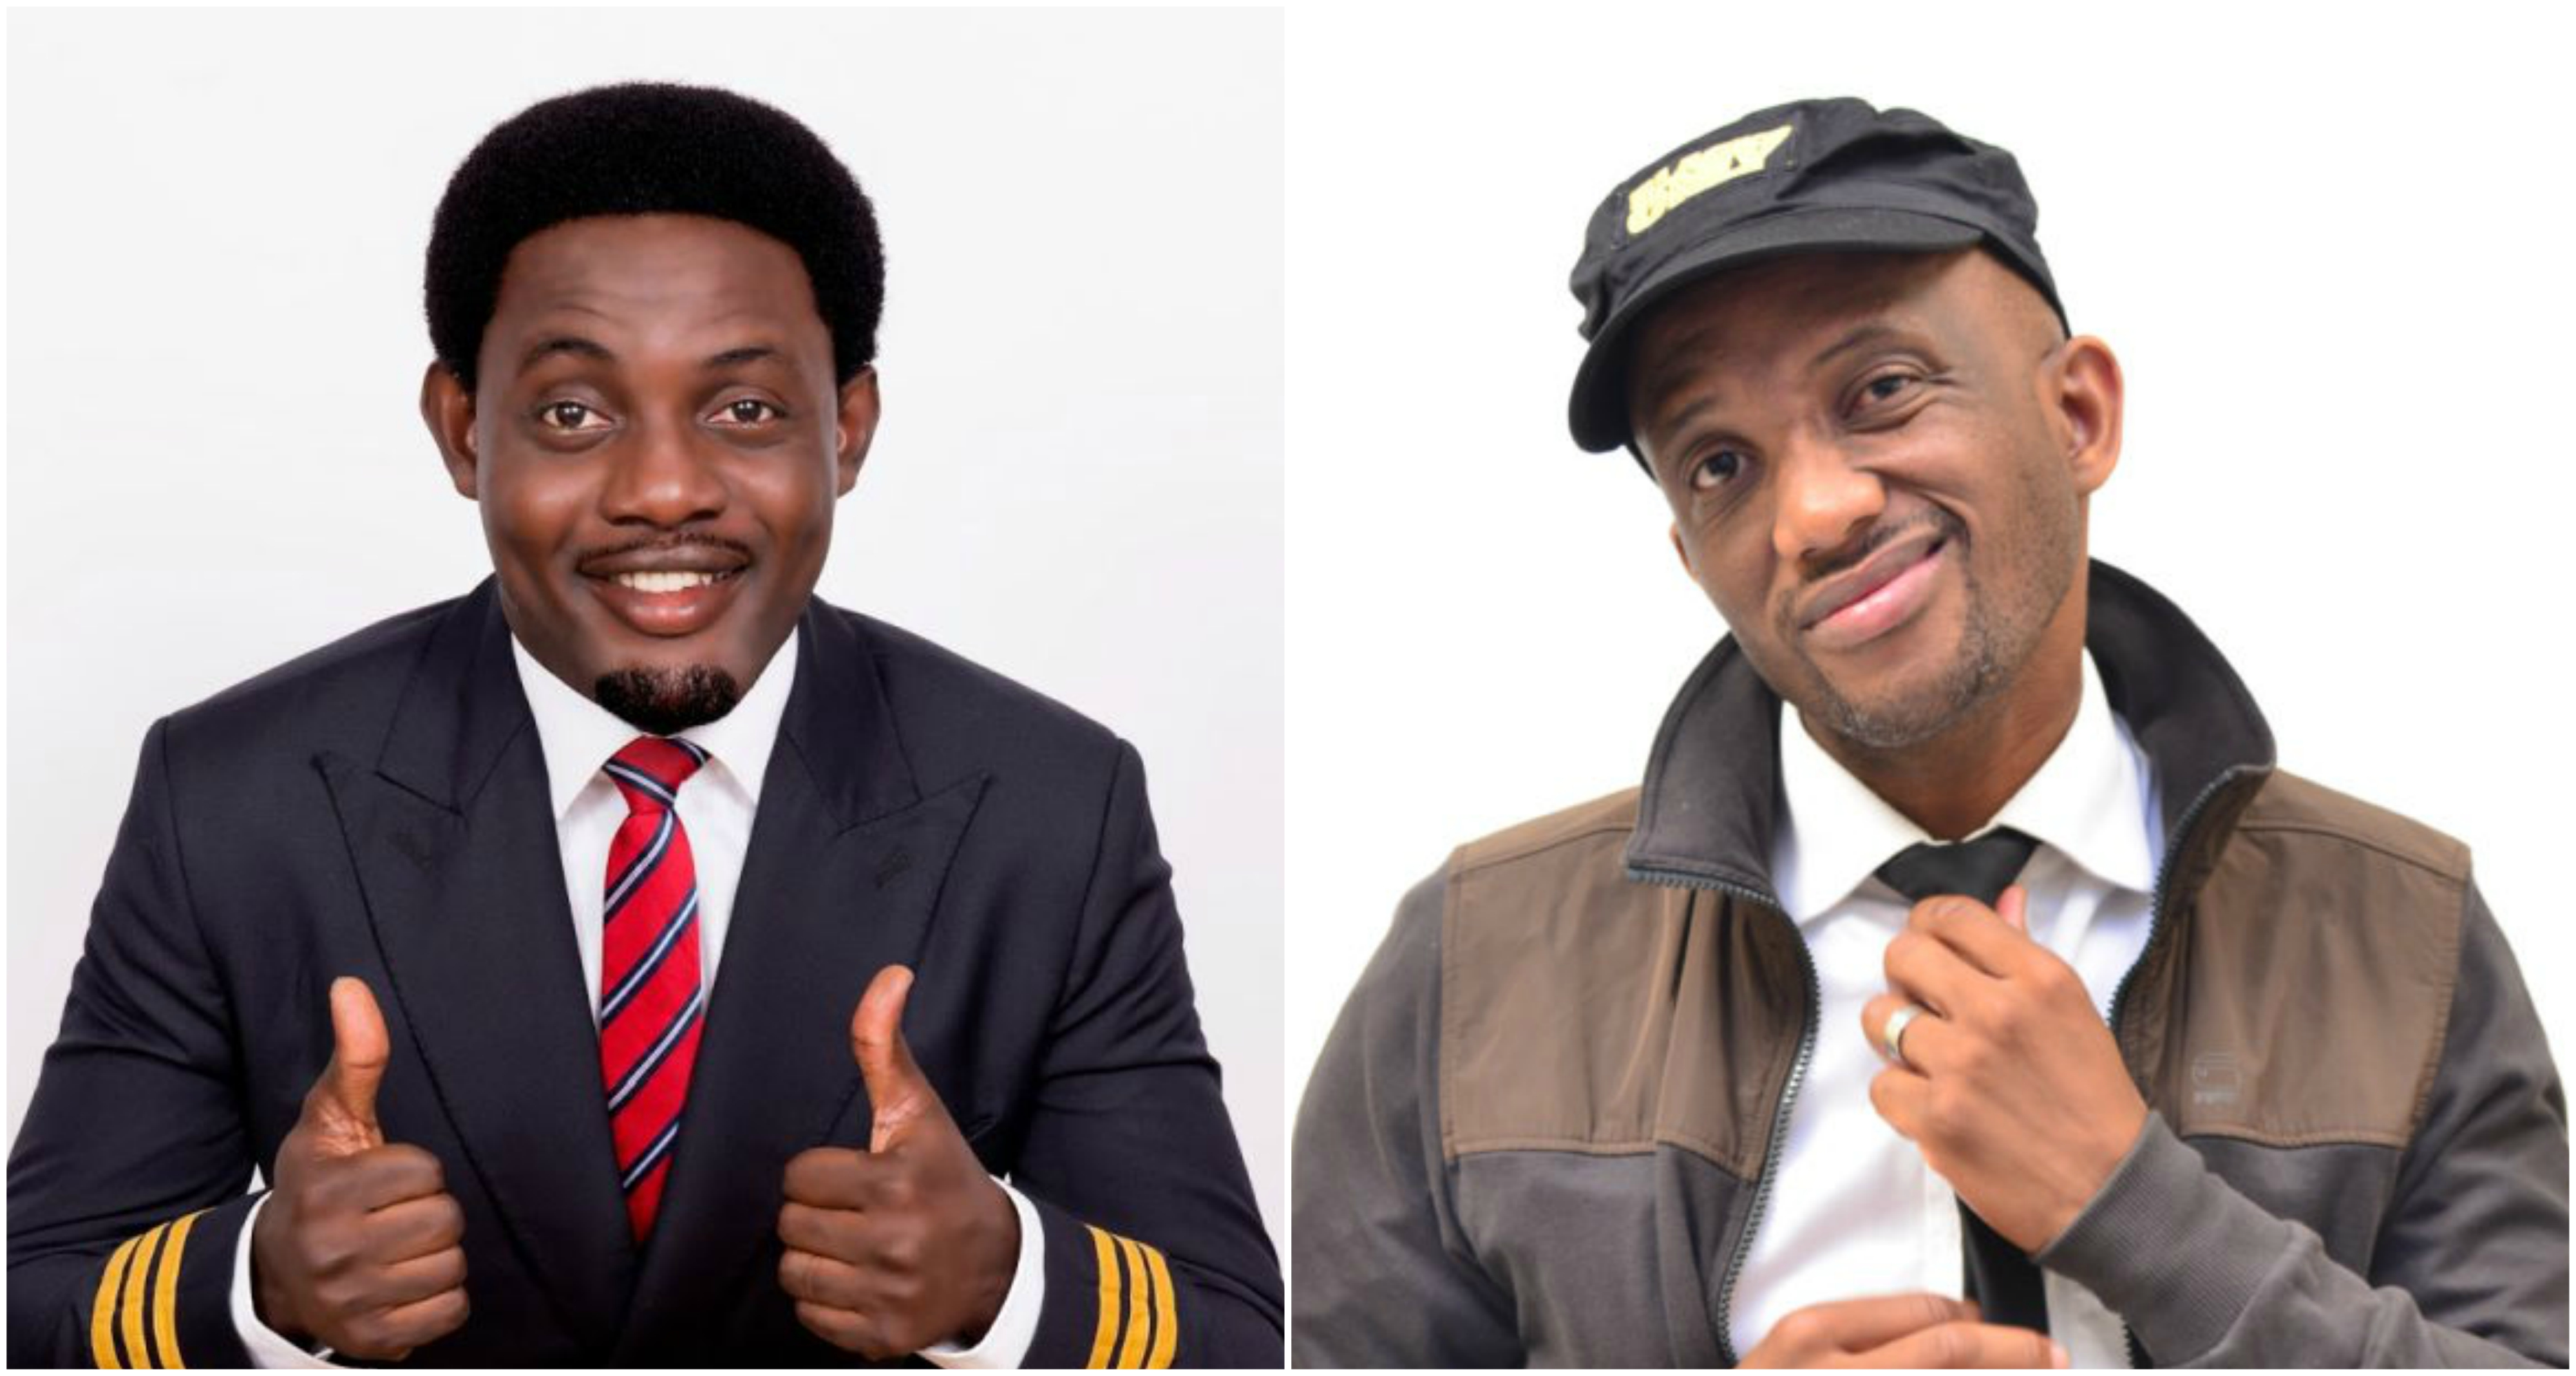 It's a battle of comedy greats as Nigeria's AY Makun faces South Africa's David Kau on Lip Sync Battle Africa